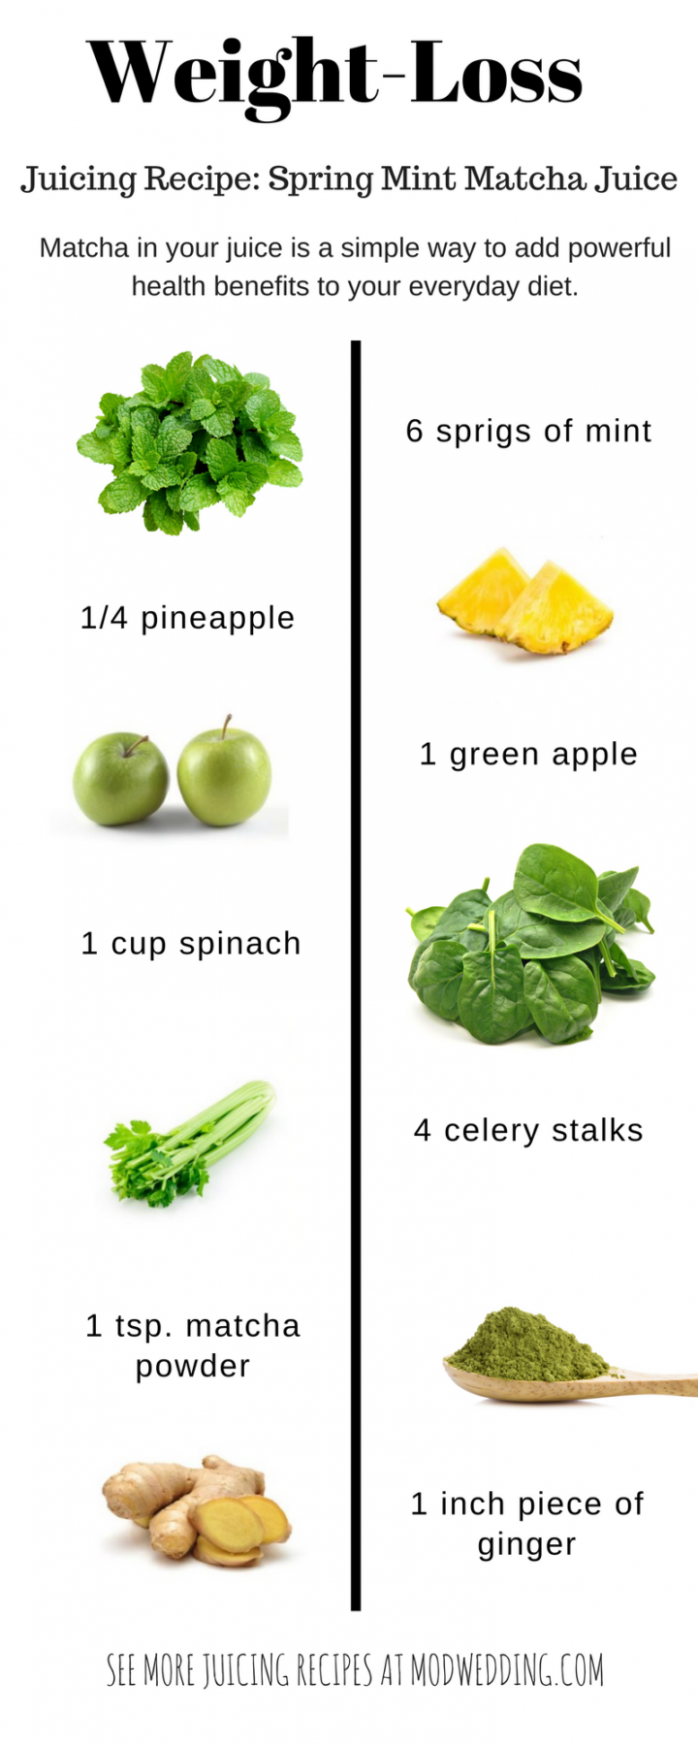 Pin on Juicing and cleansing